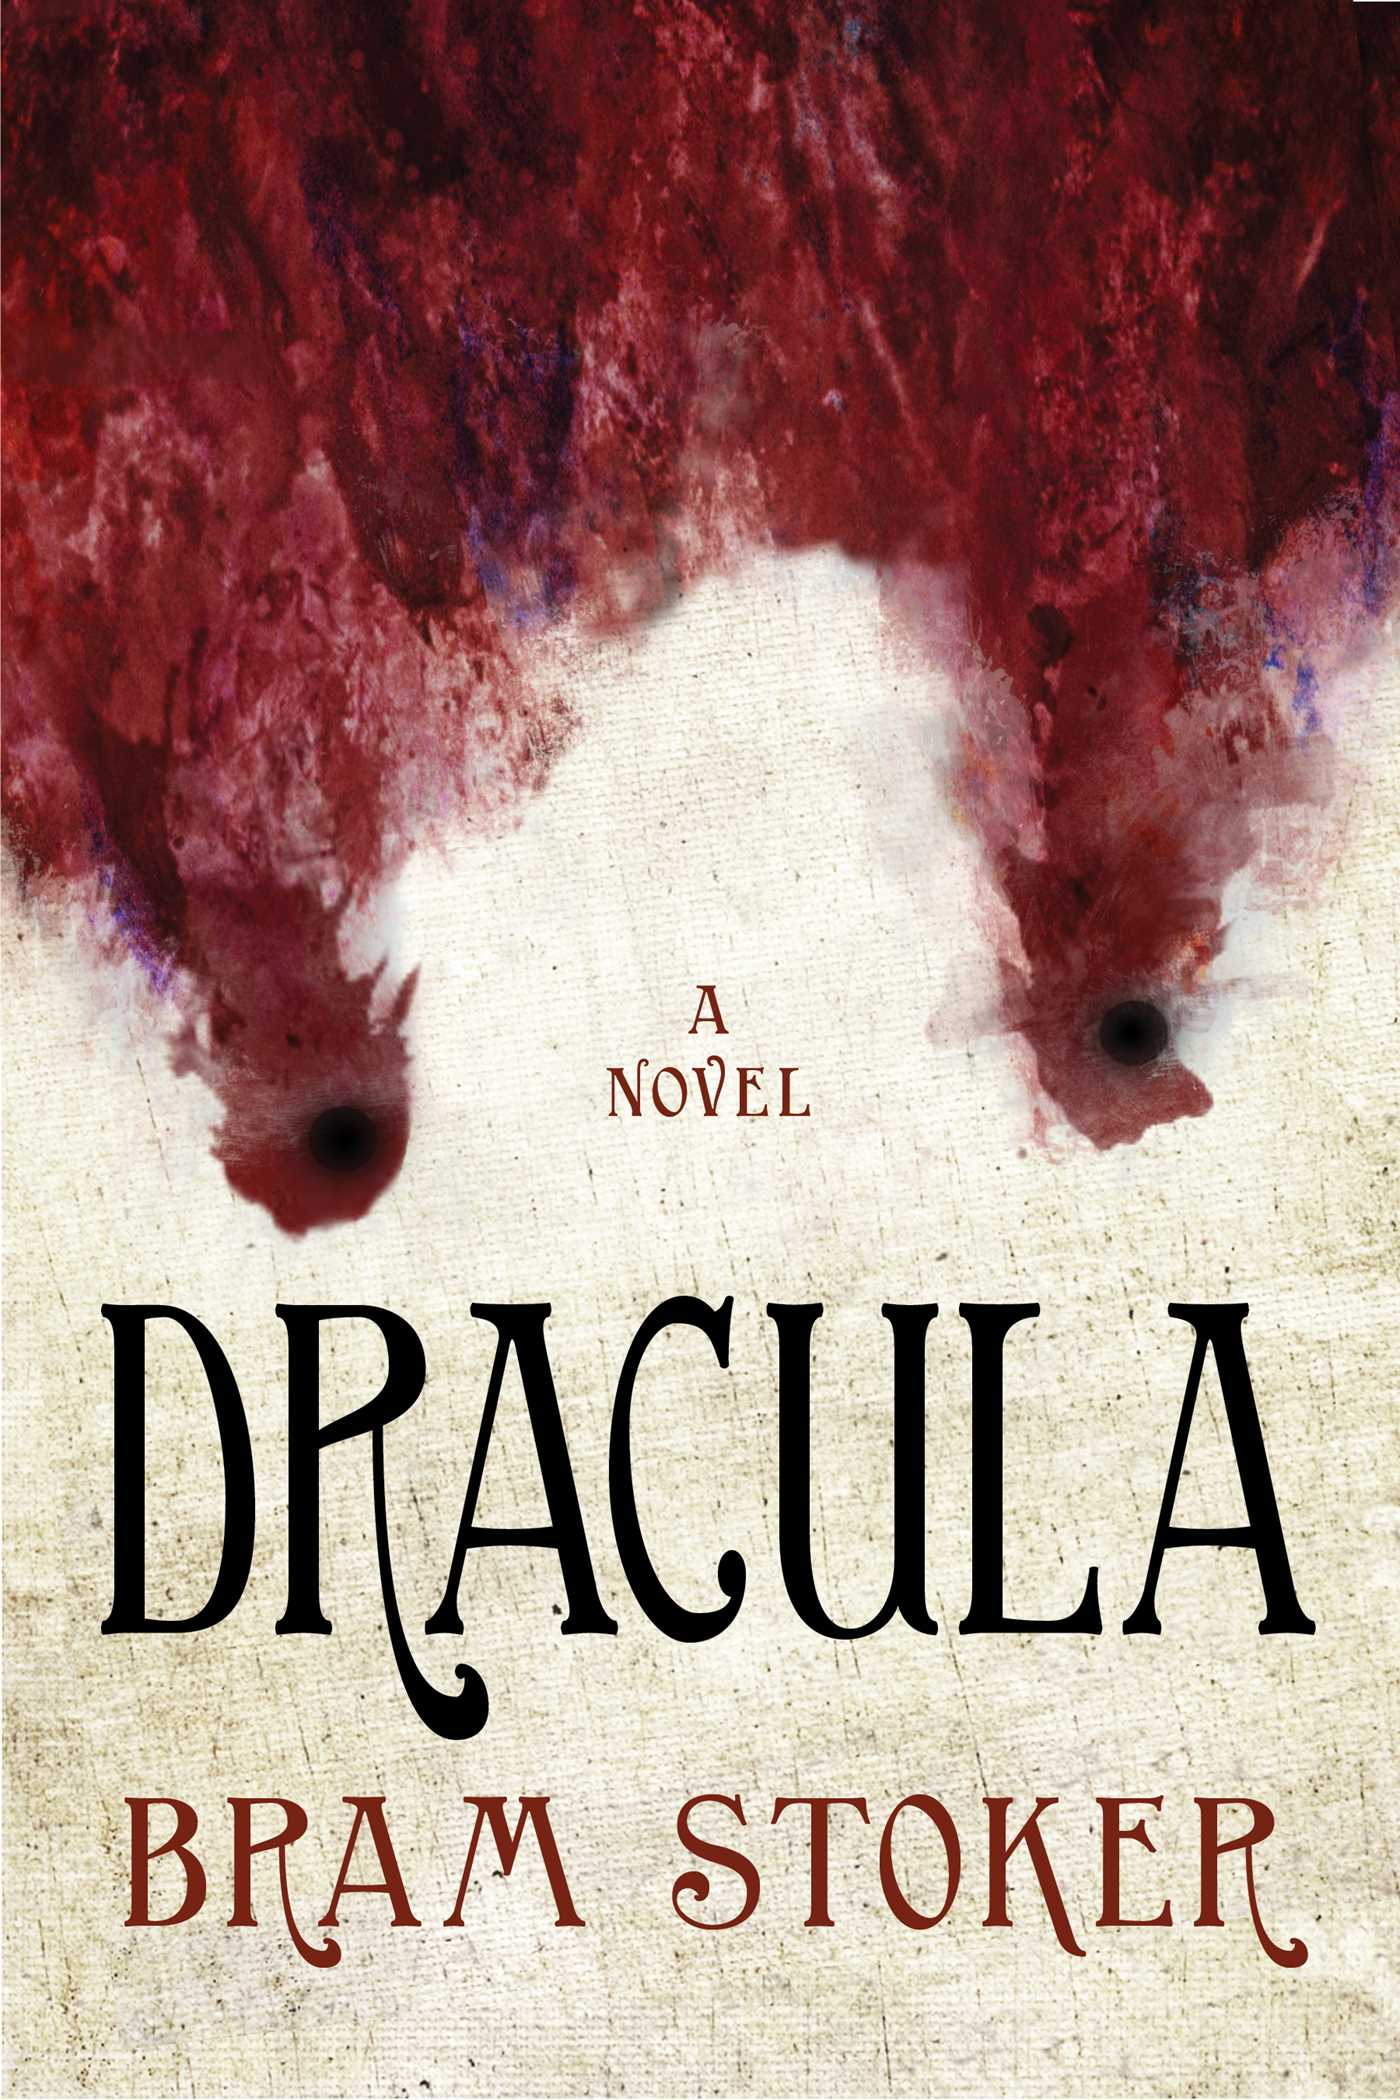 """christianity in dracula by bram stoker Published in 1897, bram stoker's gothic novel """"dracula"""" launched an  a secret  order of christian knights known as the order of the dragon."""